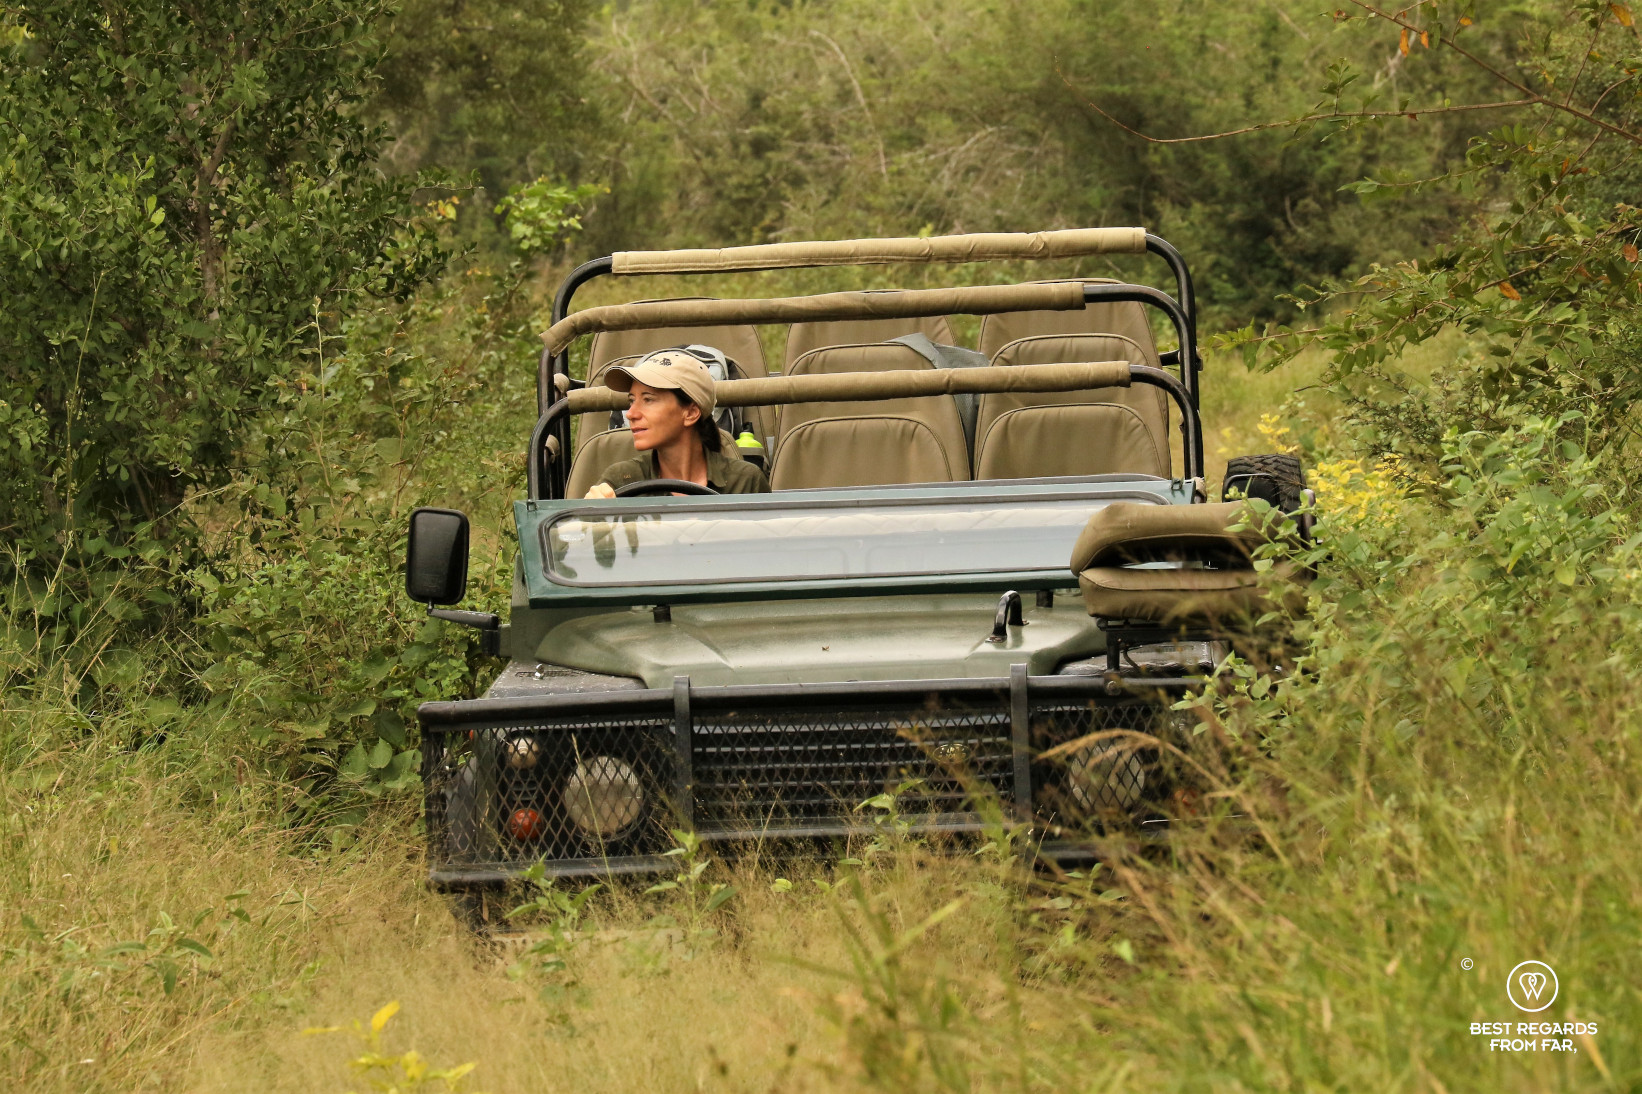 Author Claire Lessiau driving a Land Rover game drive vehicle through the African bush during the EcoTracker training